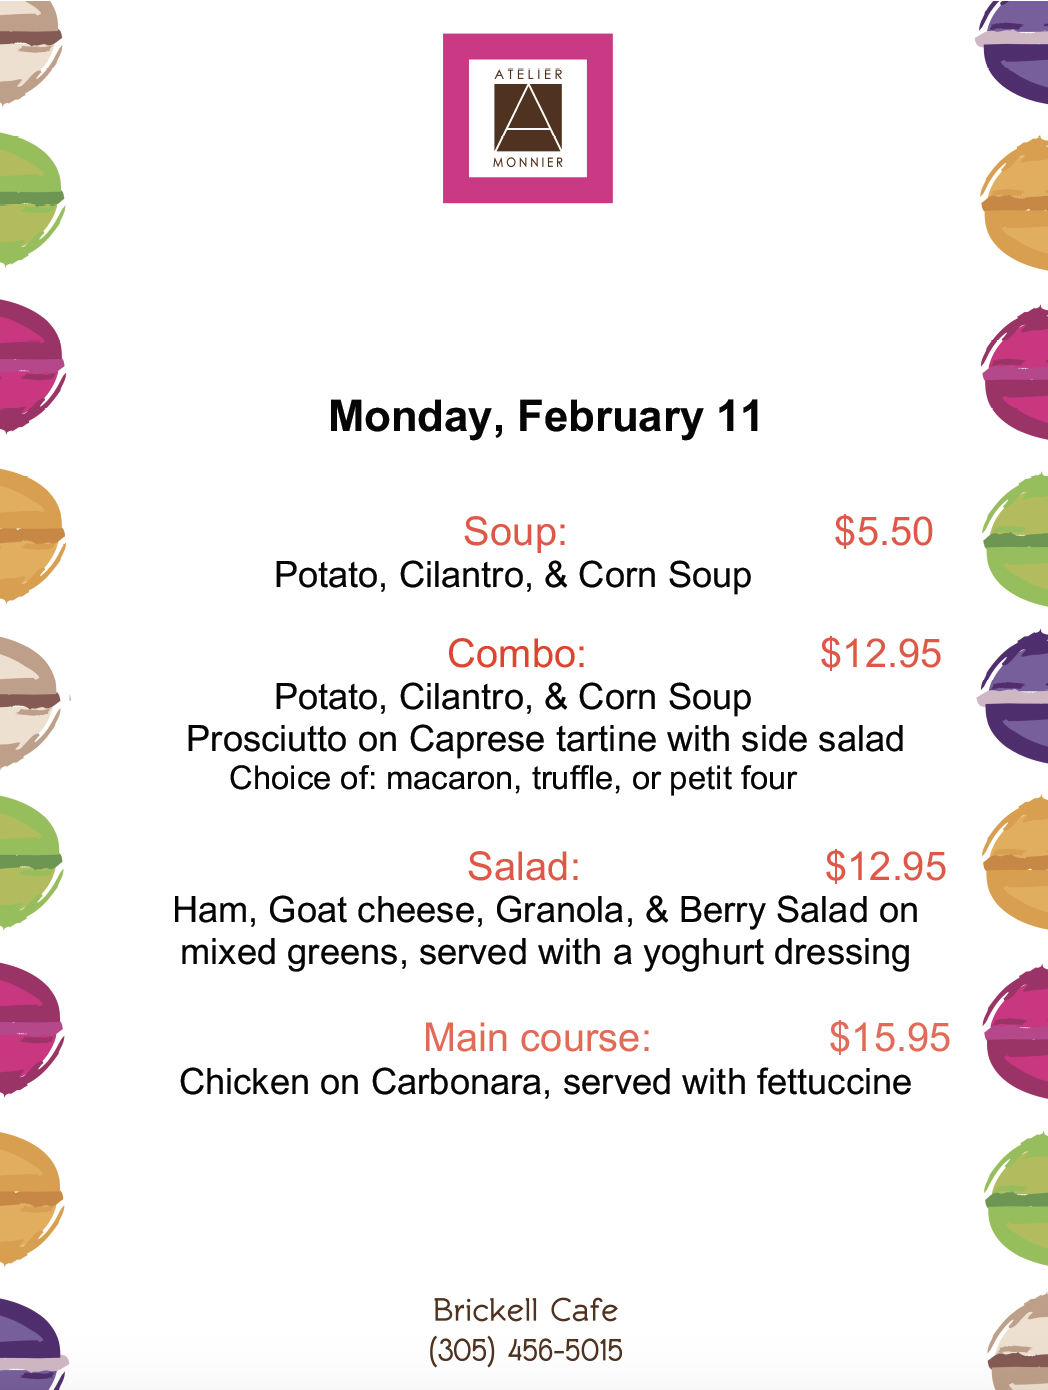 Atelier Monnier Brickell: Lunch Specials of the Week